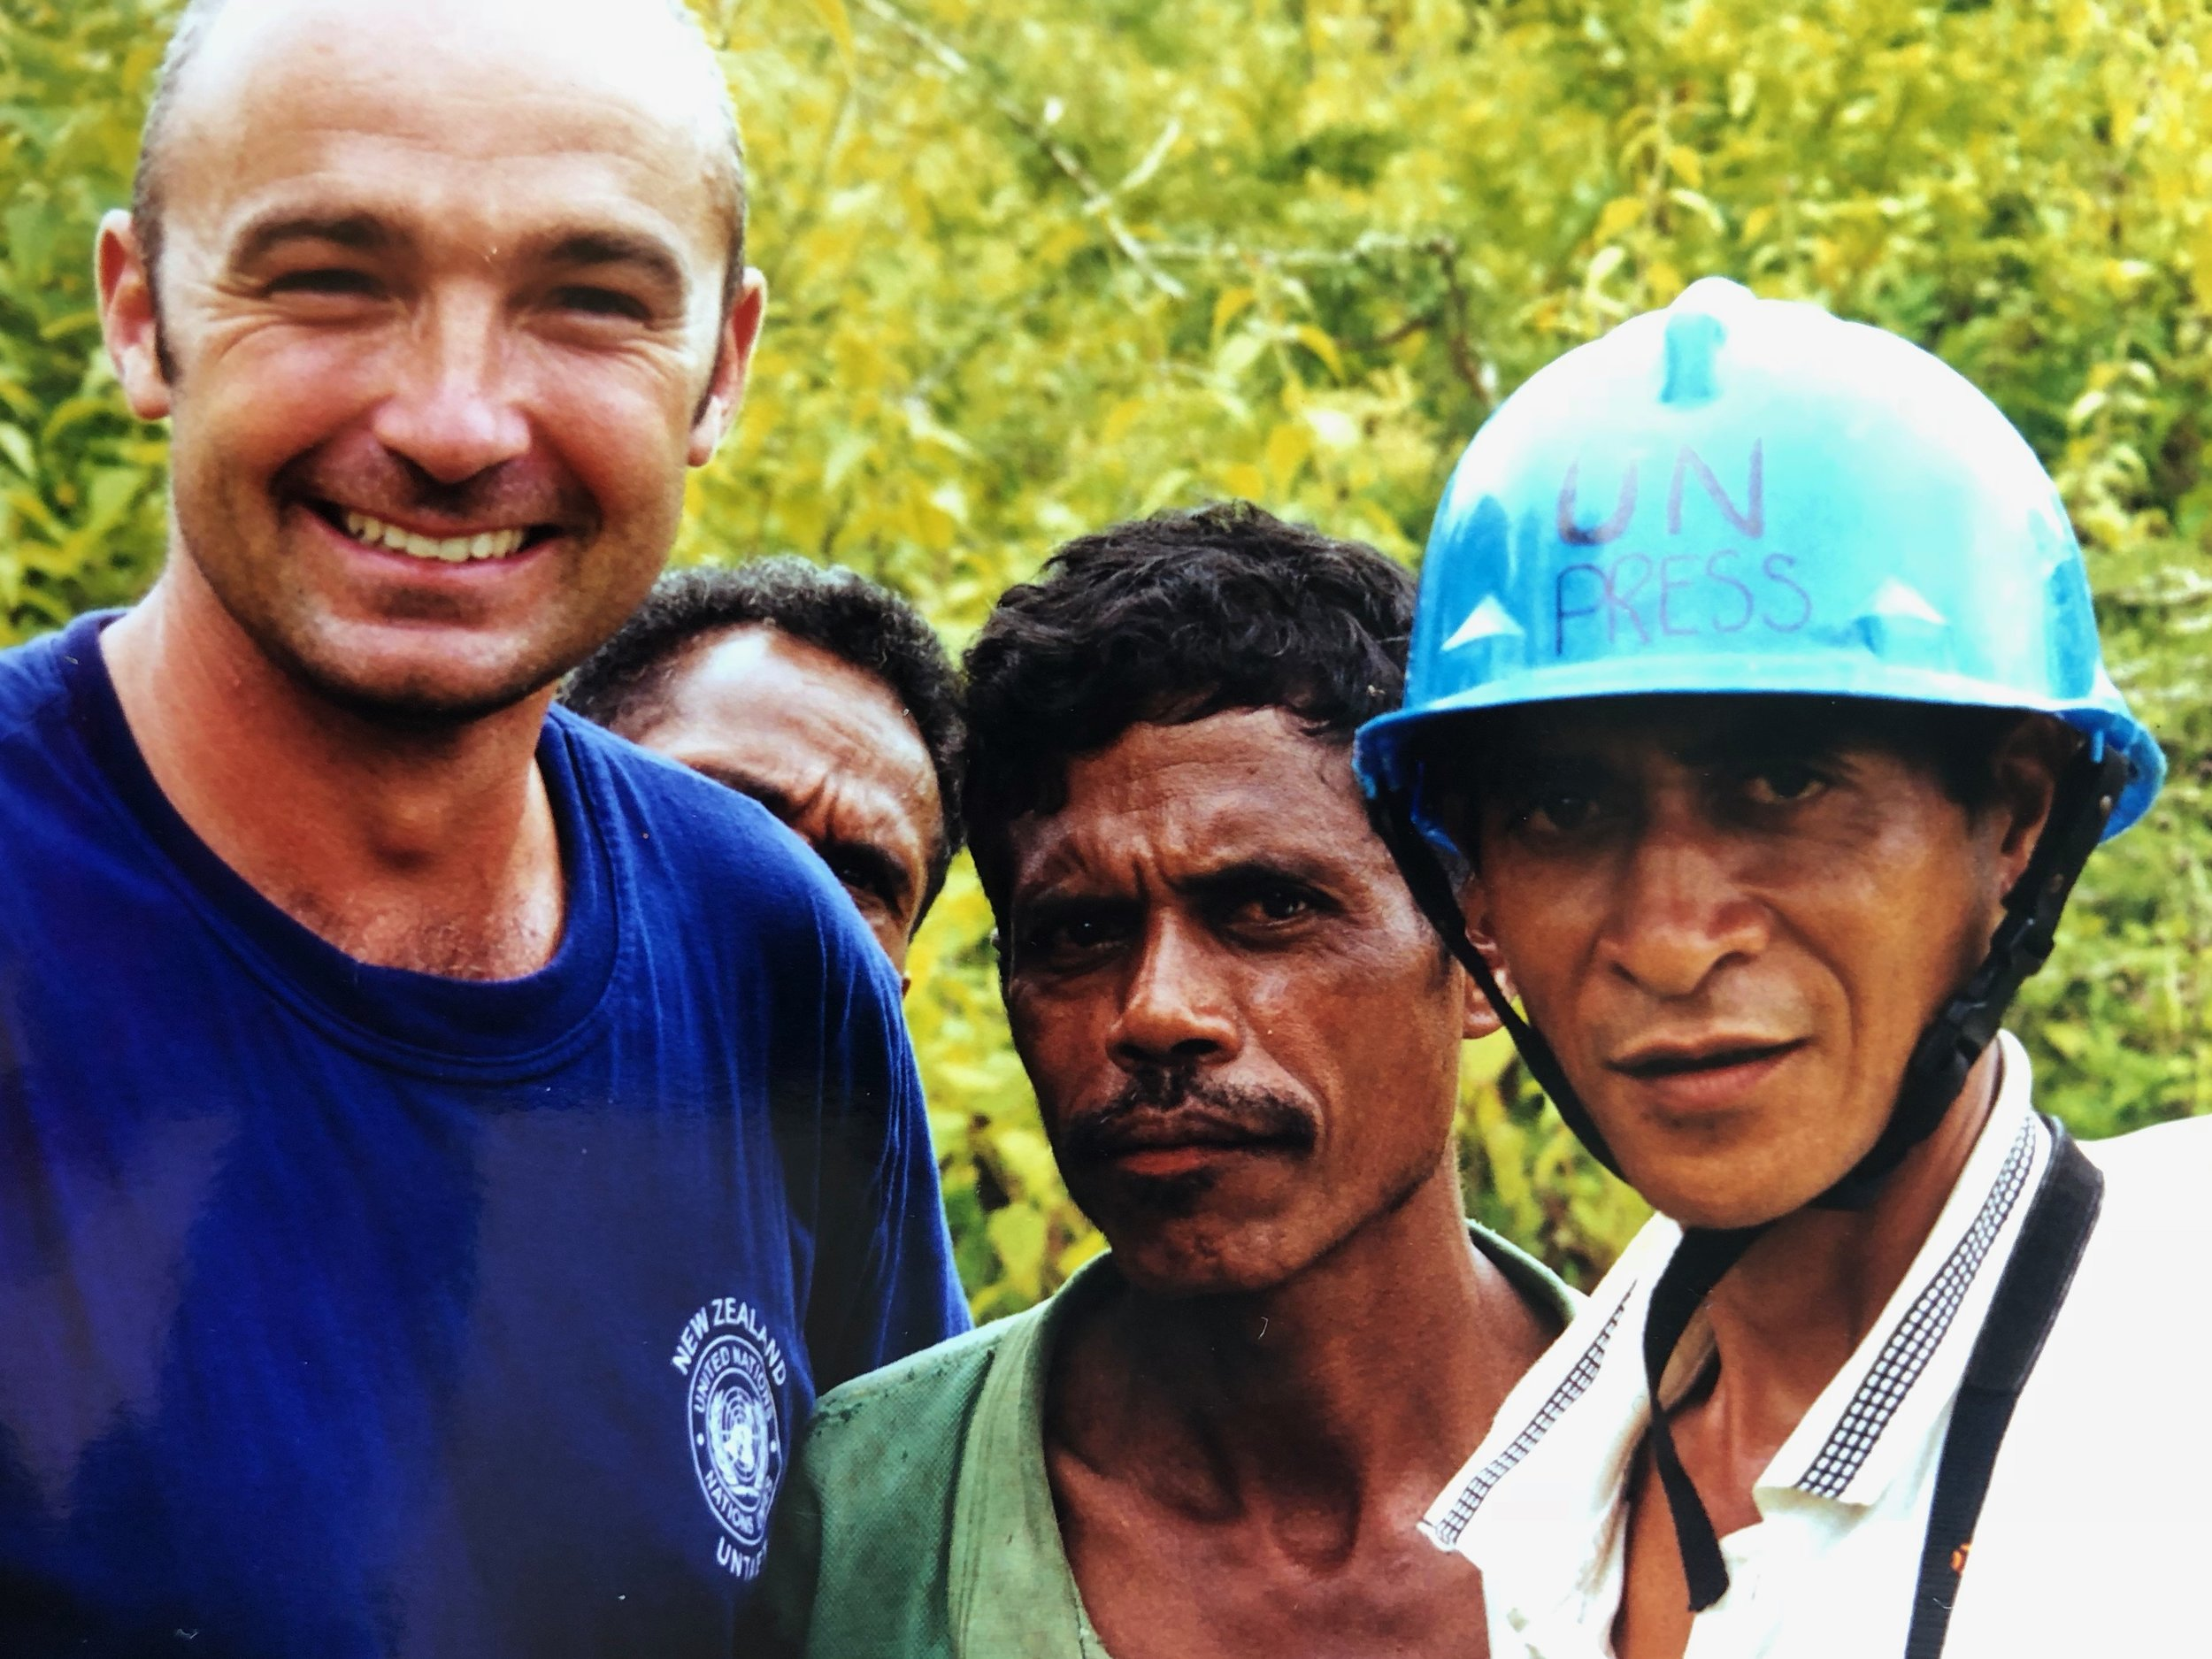 Hard Hat and the amazing story of his village - Resilience in the face of a massacre . This is an incredible story of survival that everyone can learn from. Resilience in the face of adversity